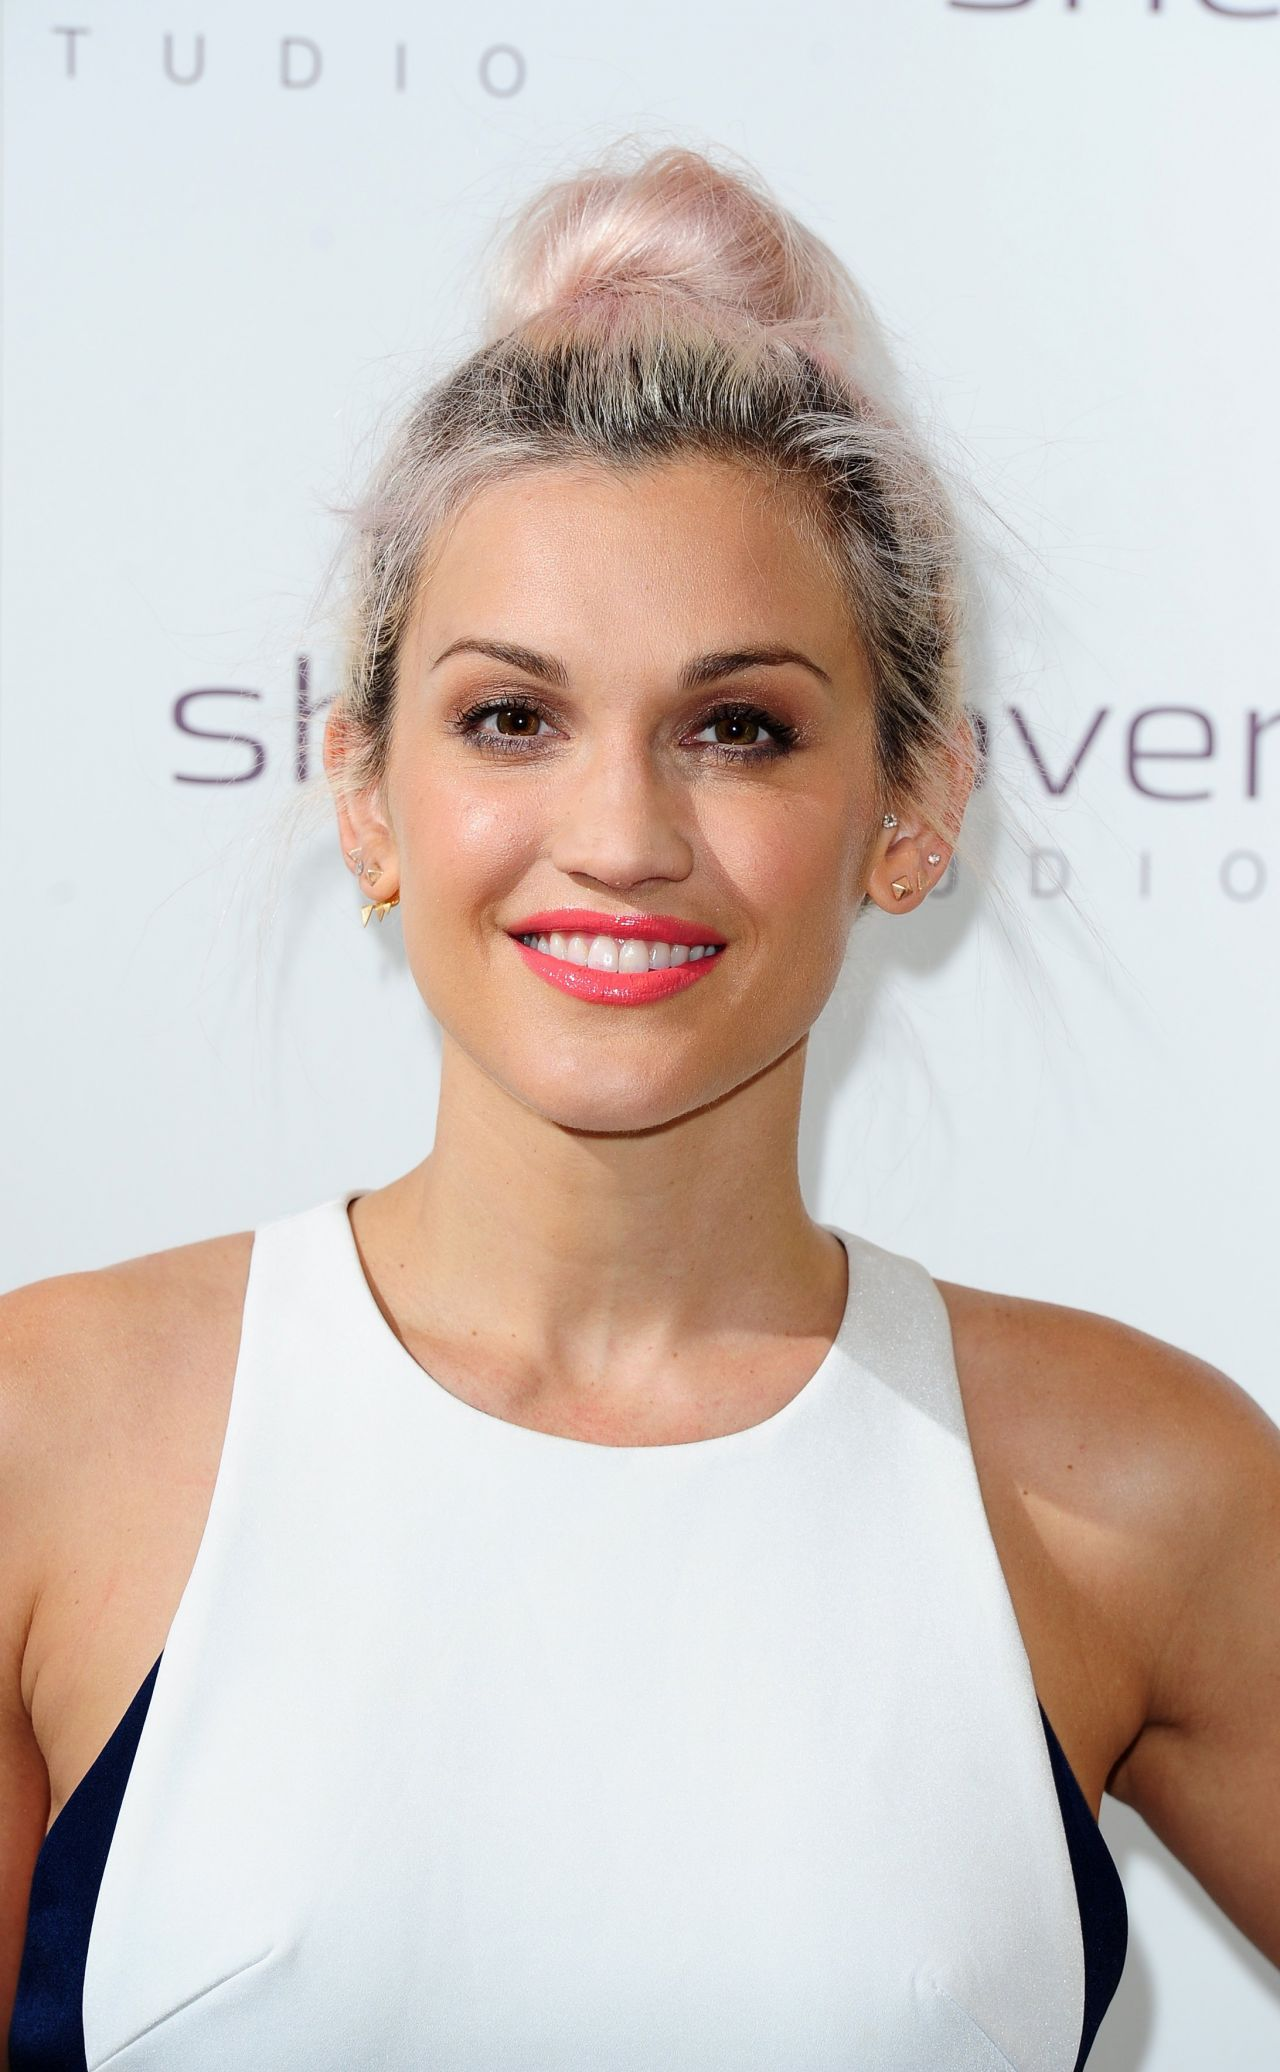 Ashley Roberts Sheer Cover Studio Event In London